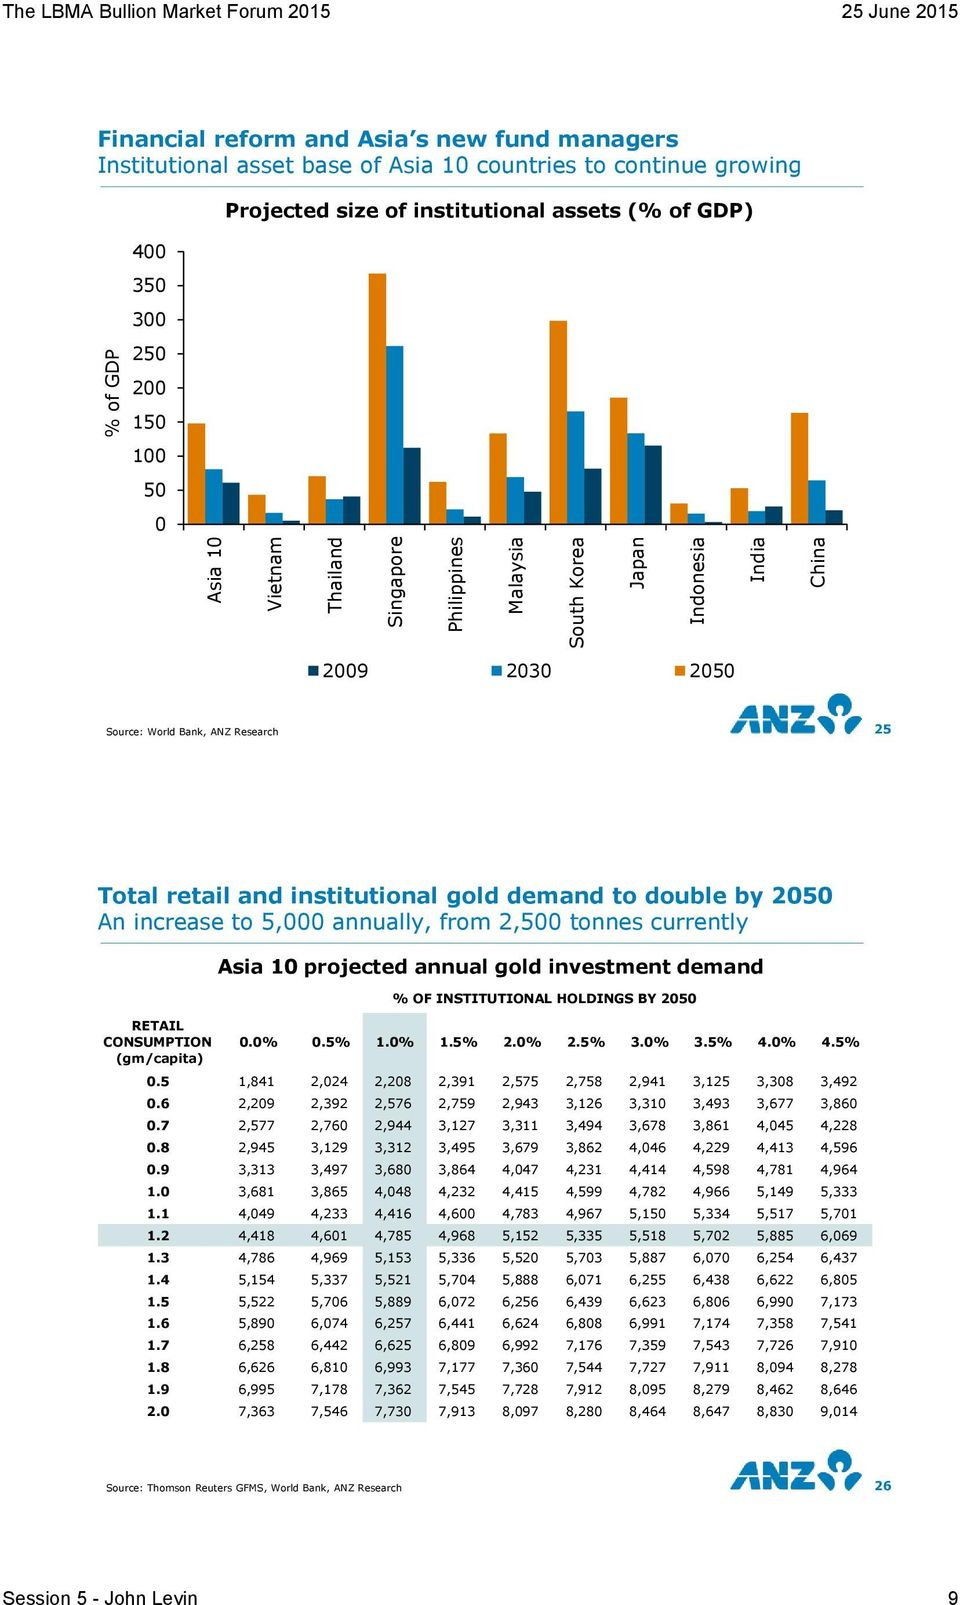 institutional gold demand to double by 25 An increase to 5, annually, from 2,5 tonnes currently RETAIL CONSUMPTION (gm/capita) Asia 1 projected annual gold investment demand % OF INSTITUTIONAL